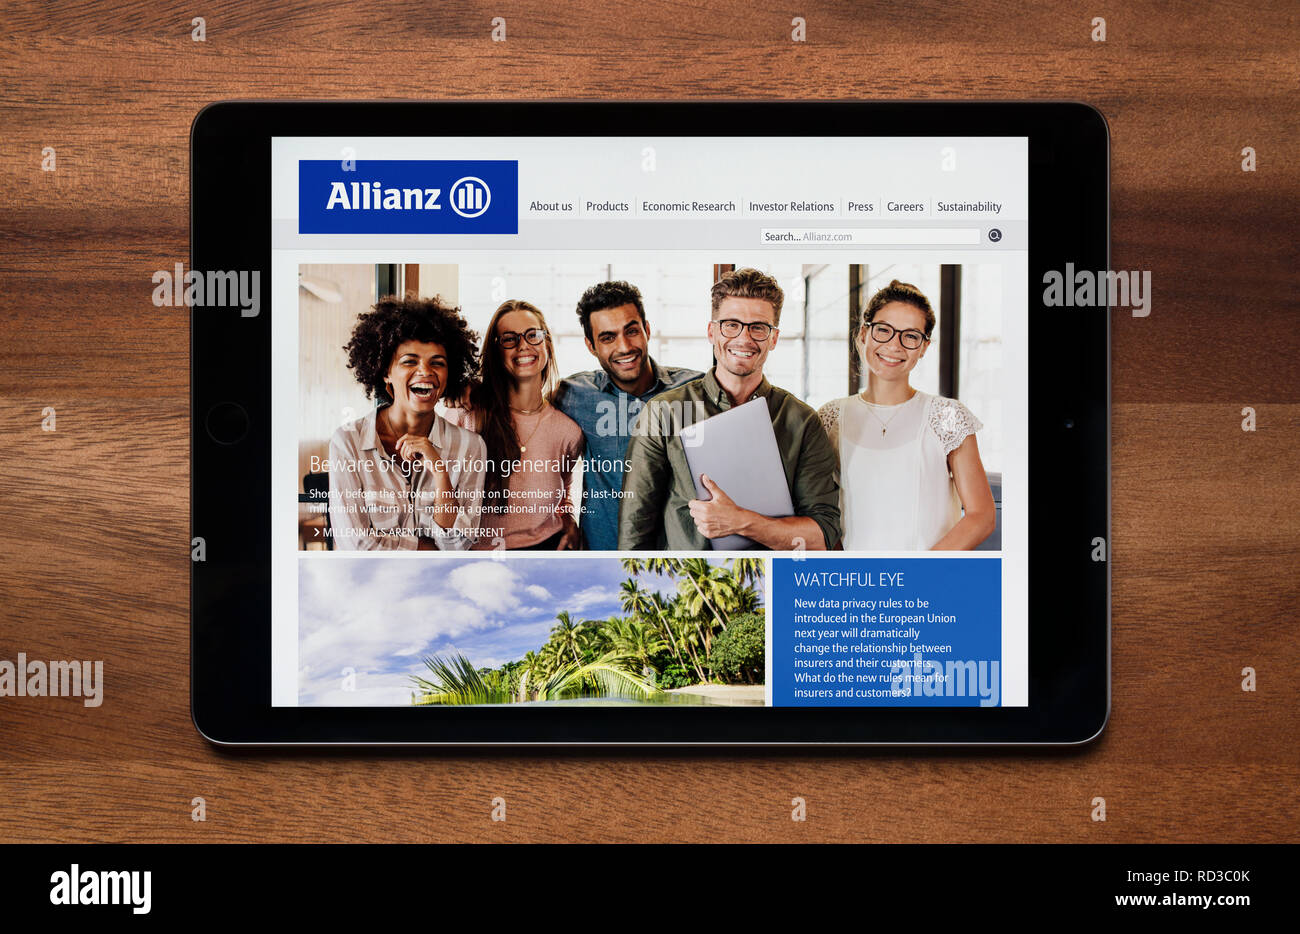 The website of Allianz insurance is seen on an iPad tablet, which is resting on a wooden table (Editorial use only). - Stock Image